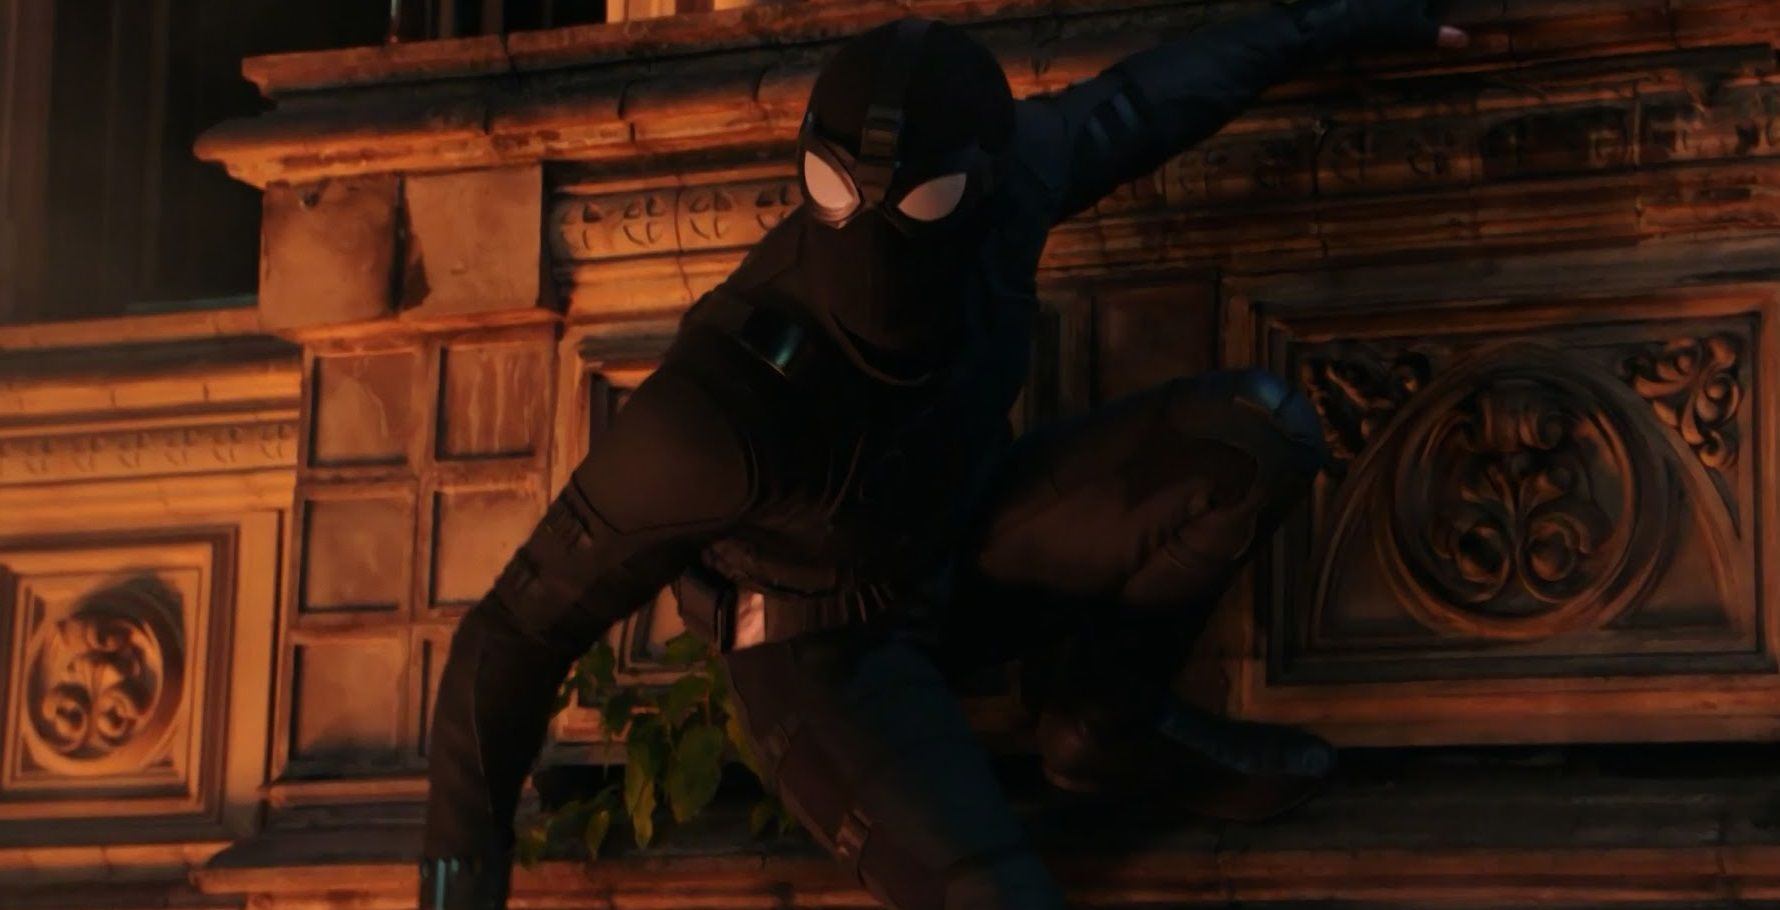 Spider-Man: Far From Home - 10 Questions About Spider-Man